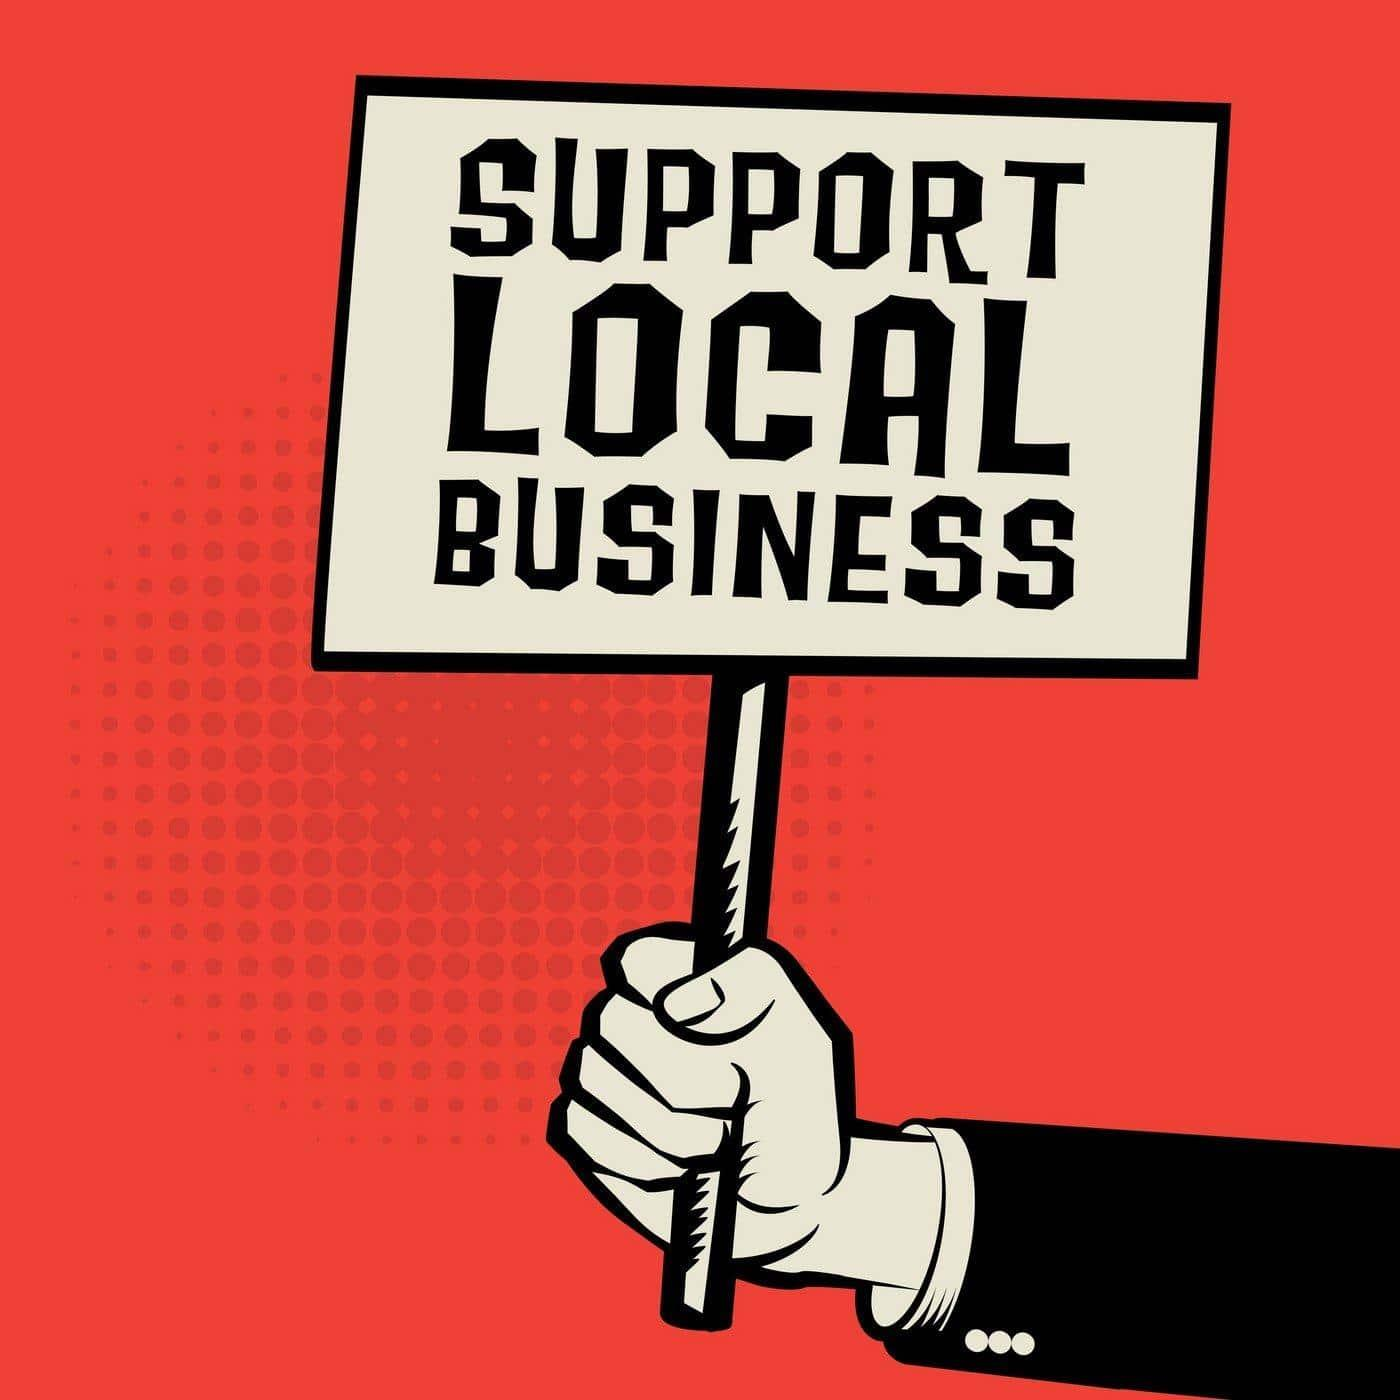 Not only does buying a copier or printer from a local dealer help the local economy, it's better for your business too.